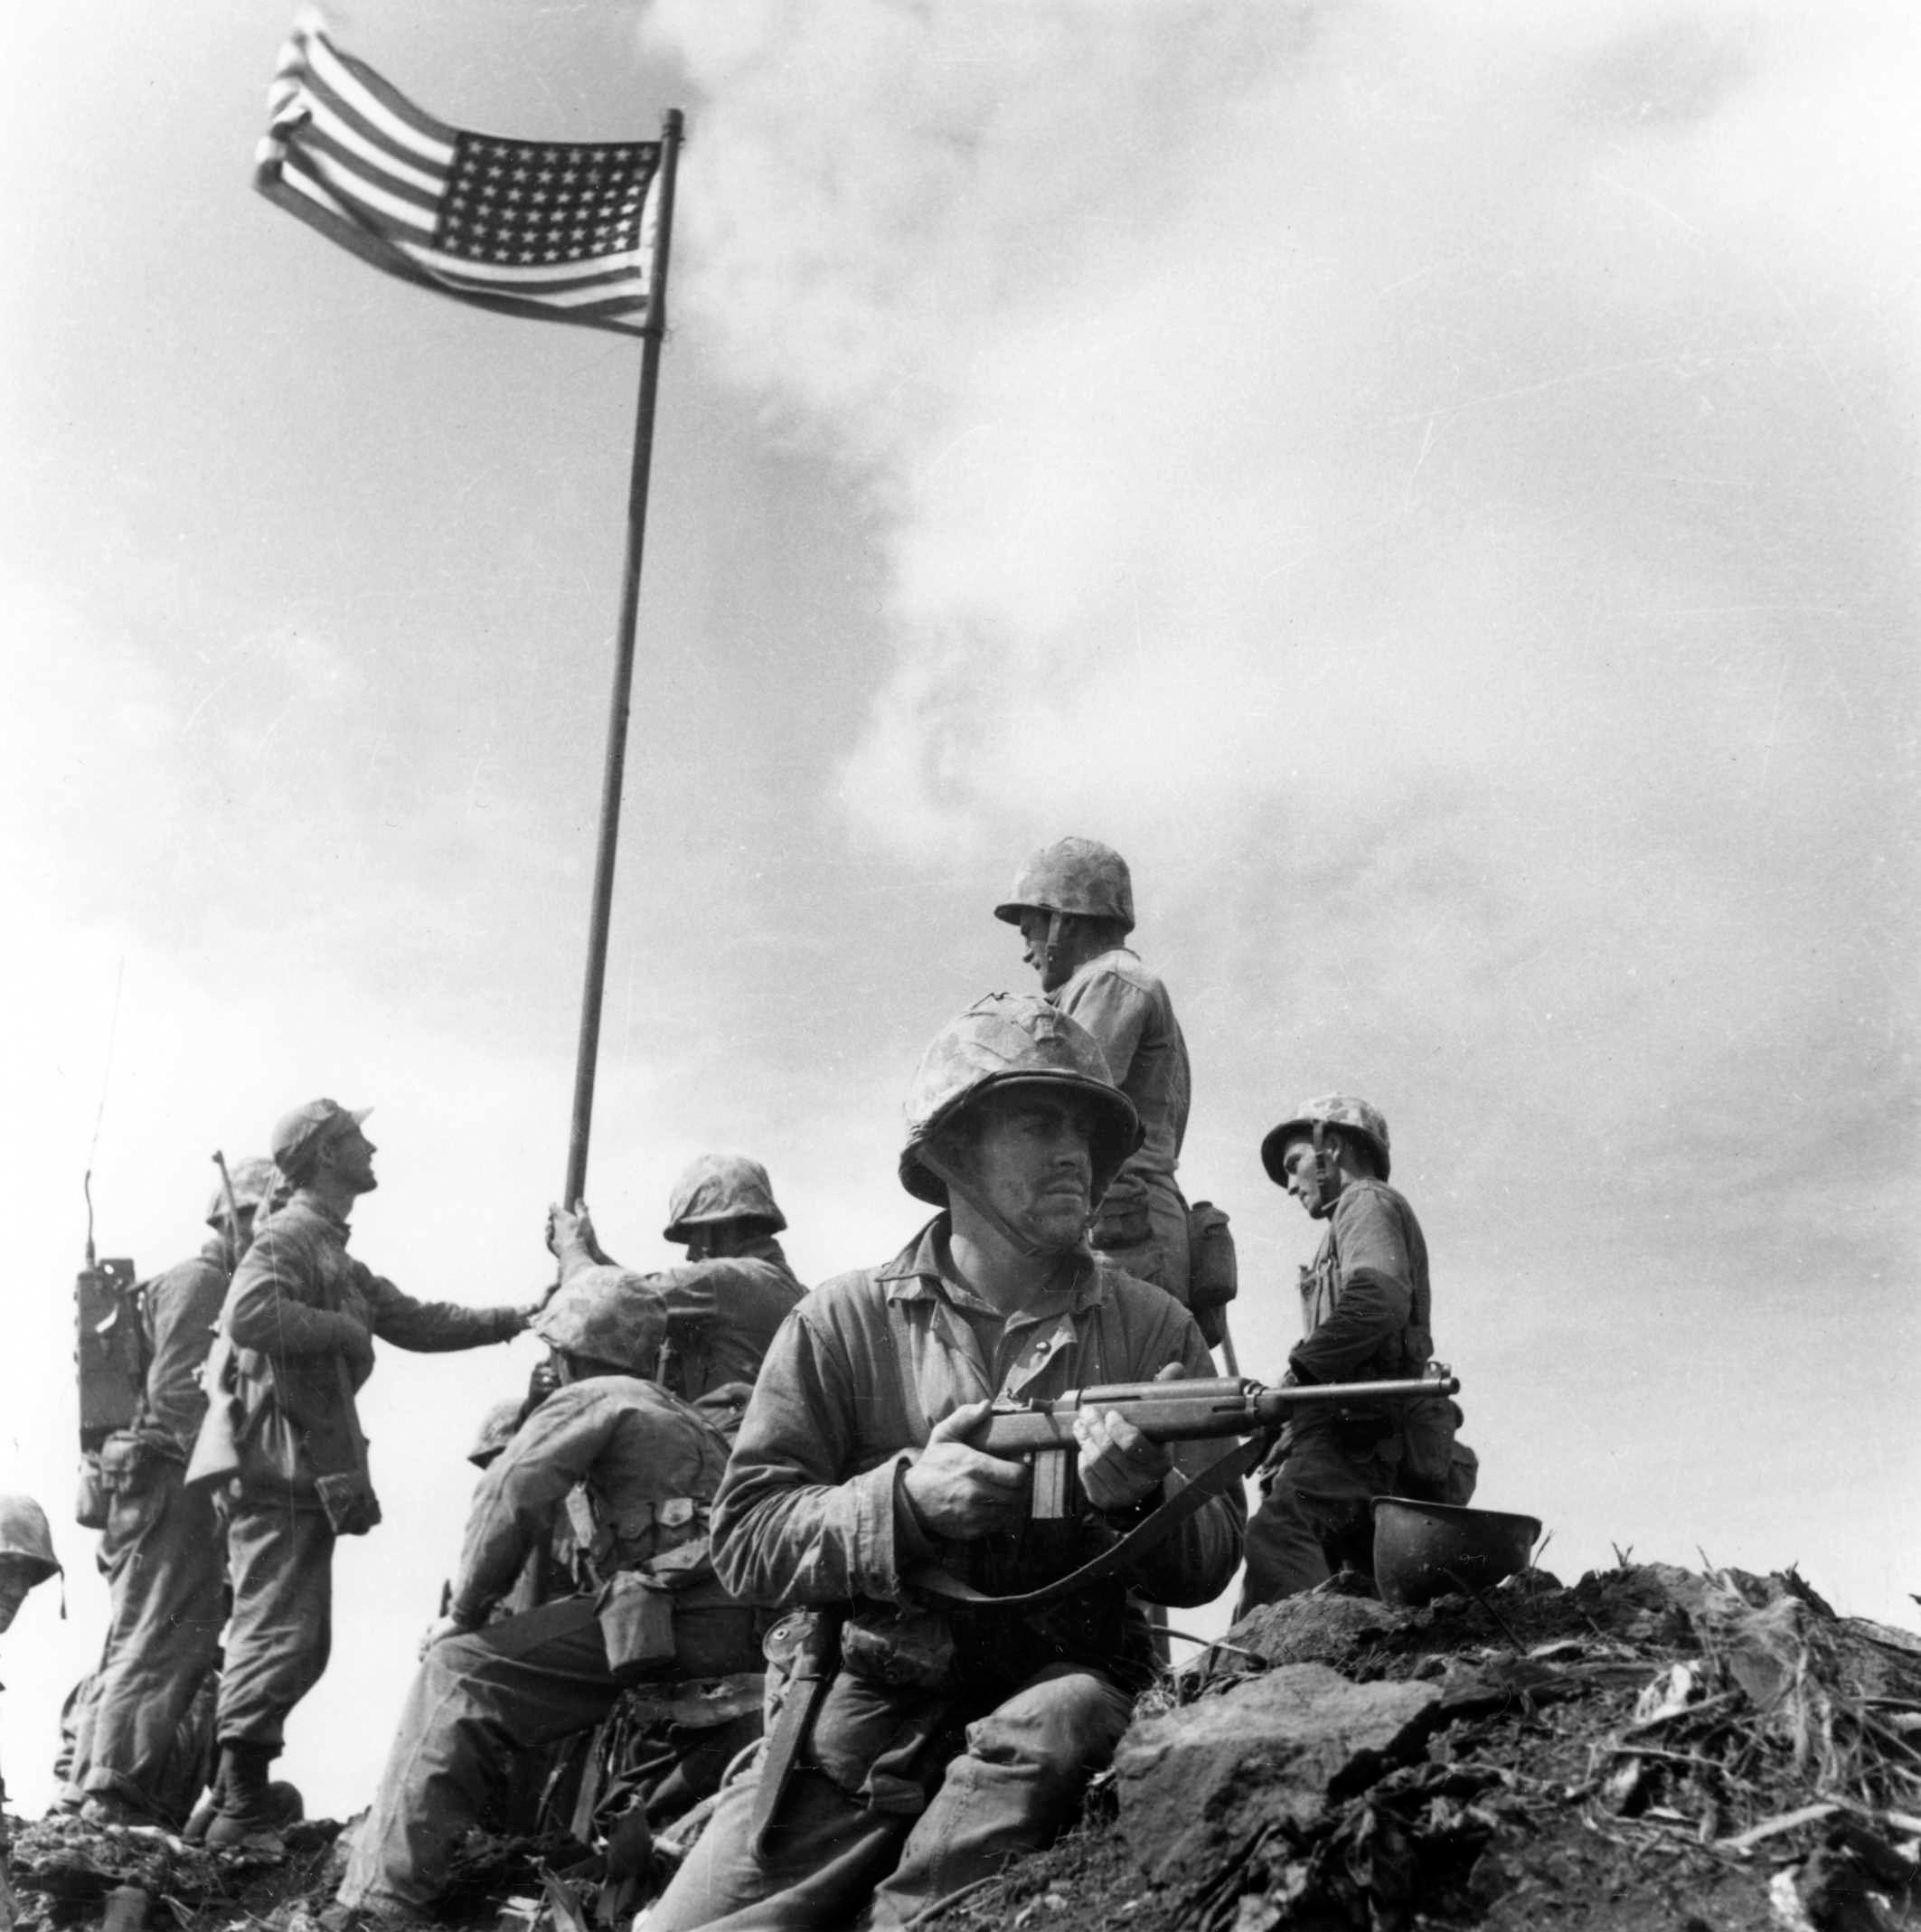 A small flag carried by the 2nd Battalion, 28th Marines is planted atop Mount Suribachi at 10:20 a.m. February 23, 1945. This is the first flag raising on the top of Mt. Suribachi. The famous flag-raising photo was taken when the second flag was put up later that day. This photo was taken by Leatherneck's Lou Lowery. Official U.S. Navy photo.